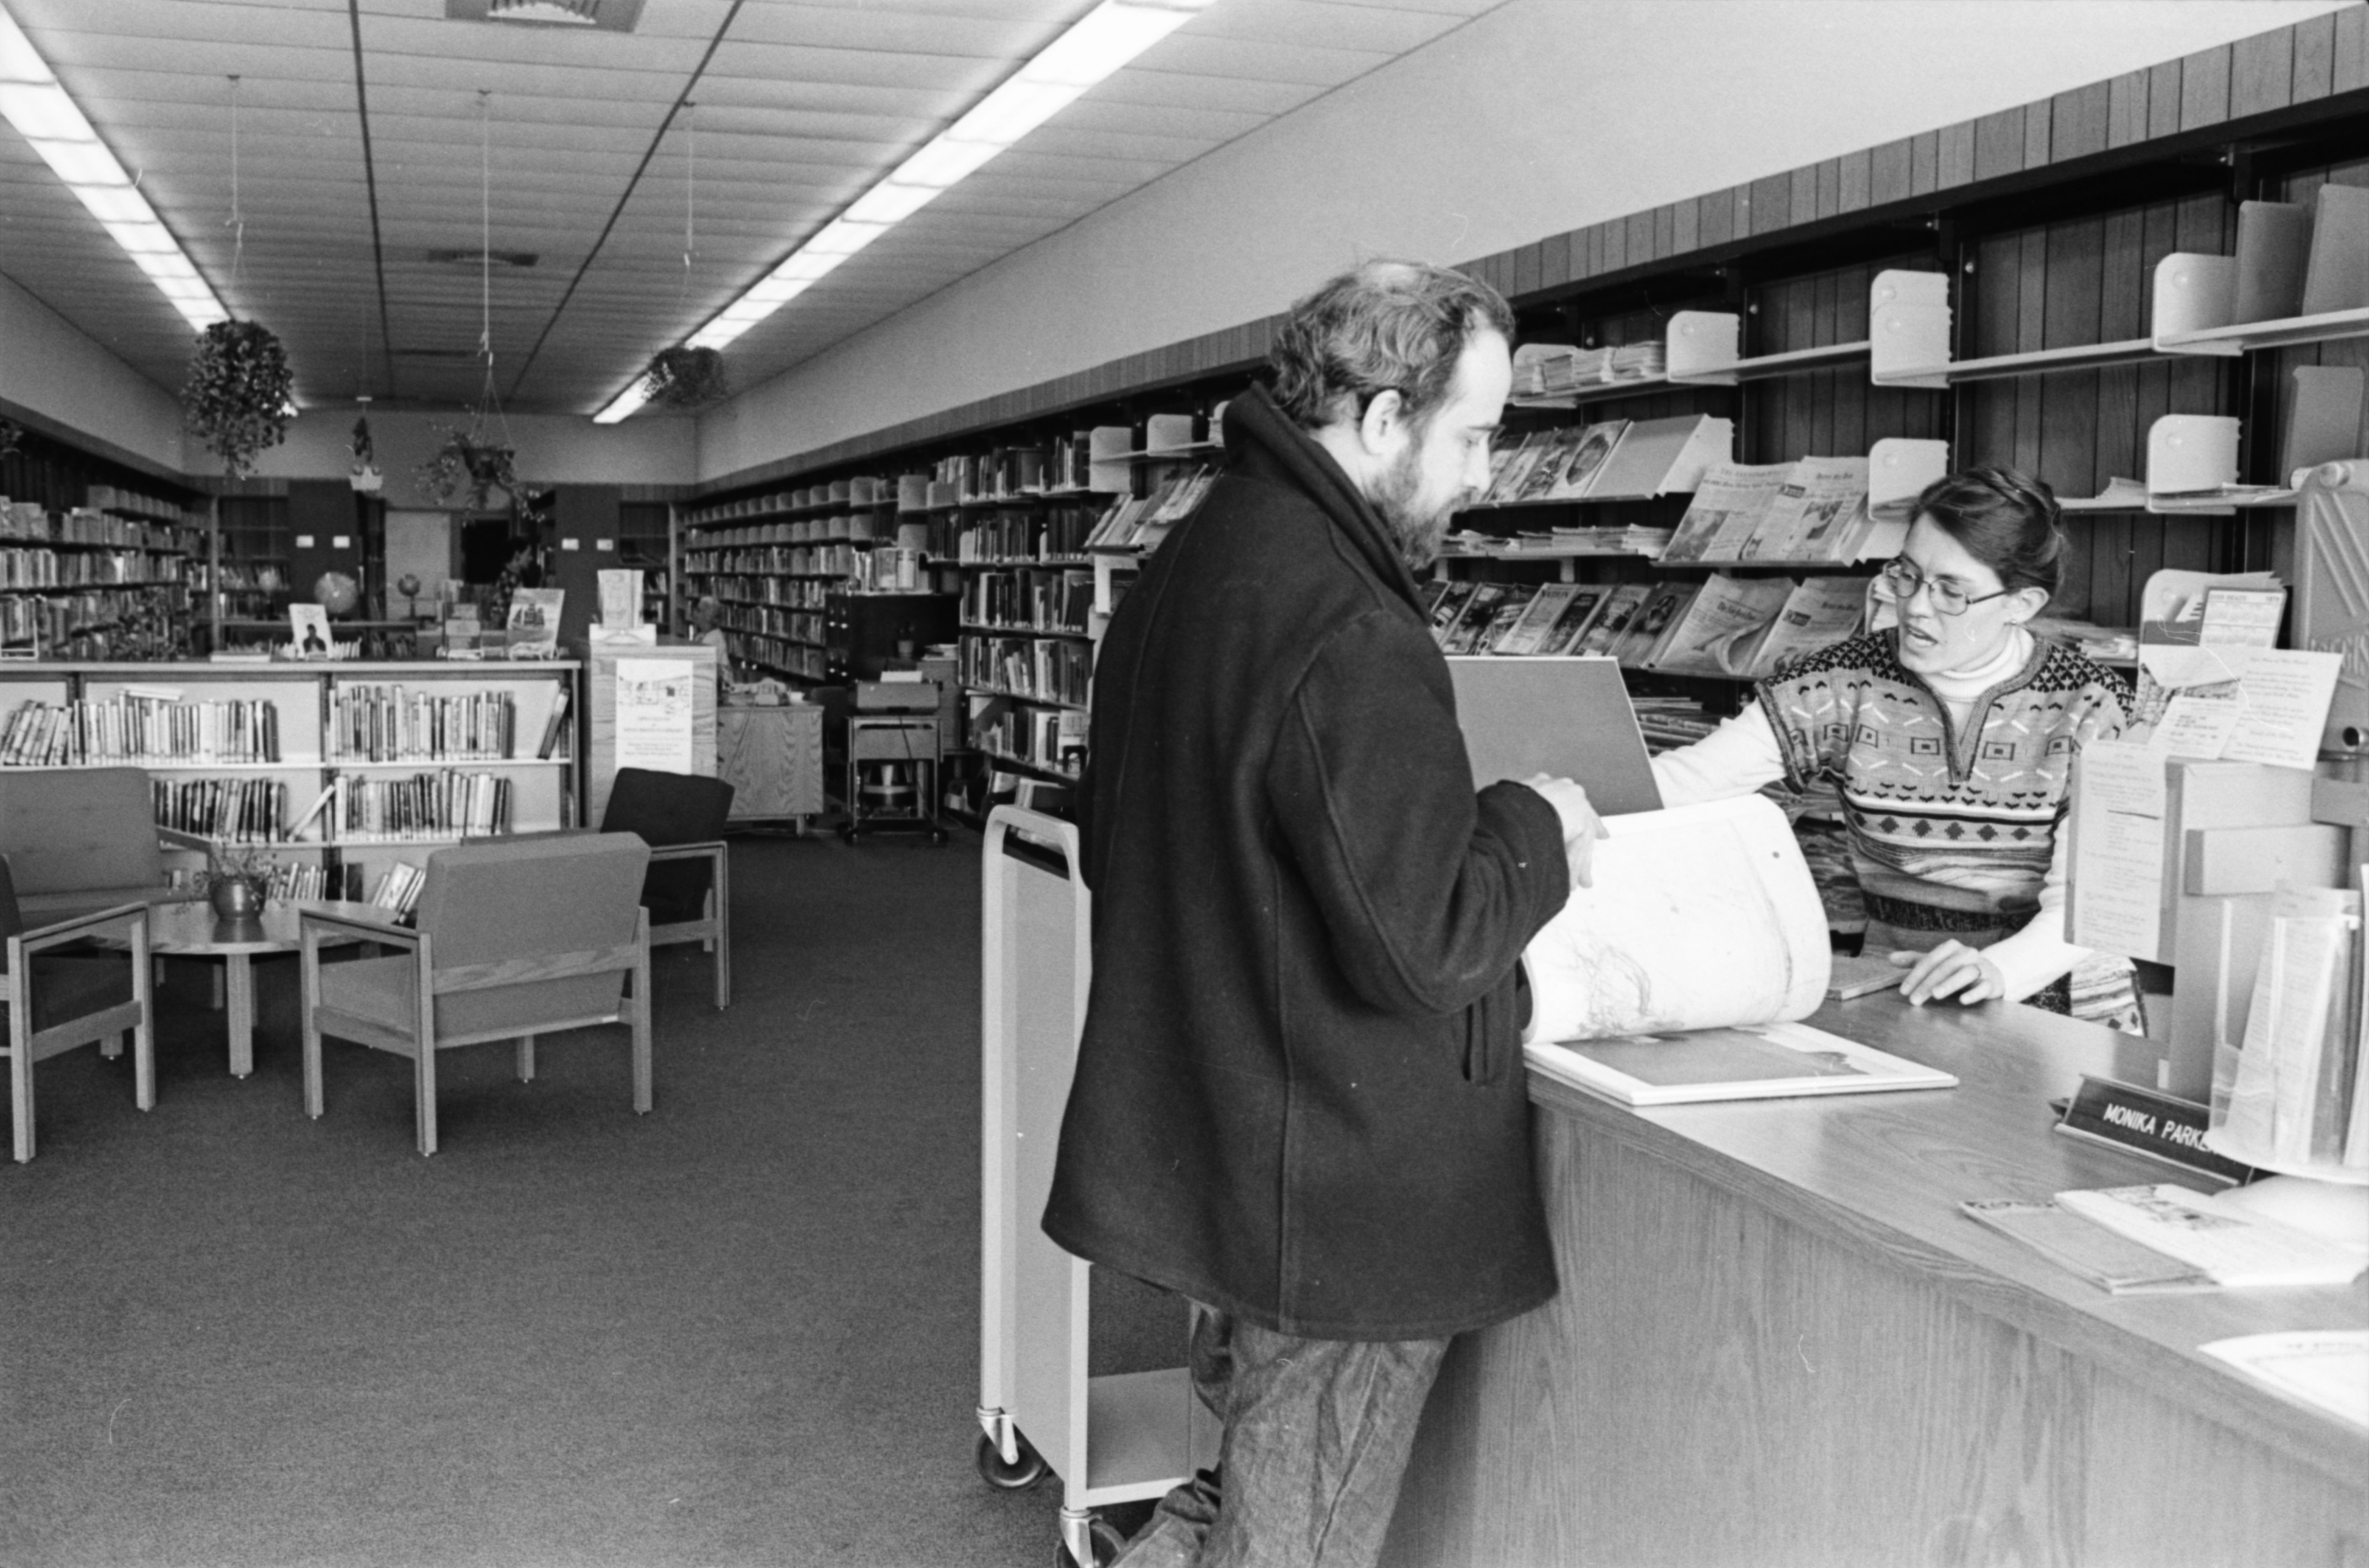 Ann Arbor Public Library's New West Branch Opens at Maple Village Shopping Center, February 1978 image